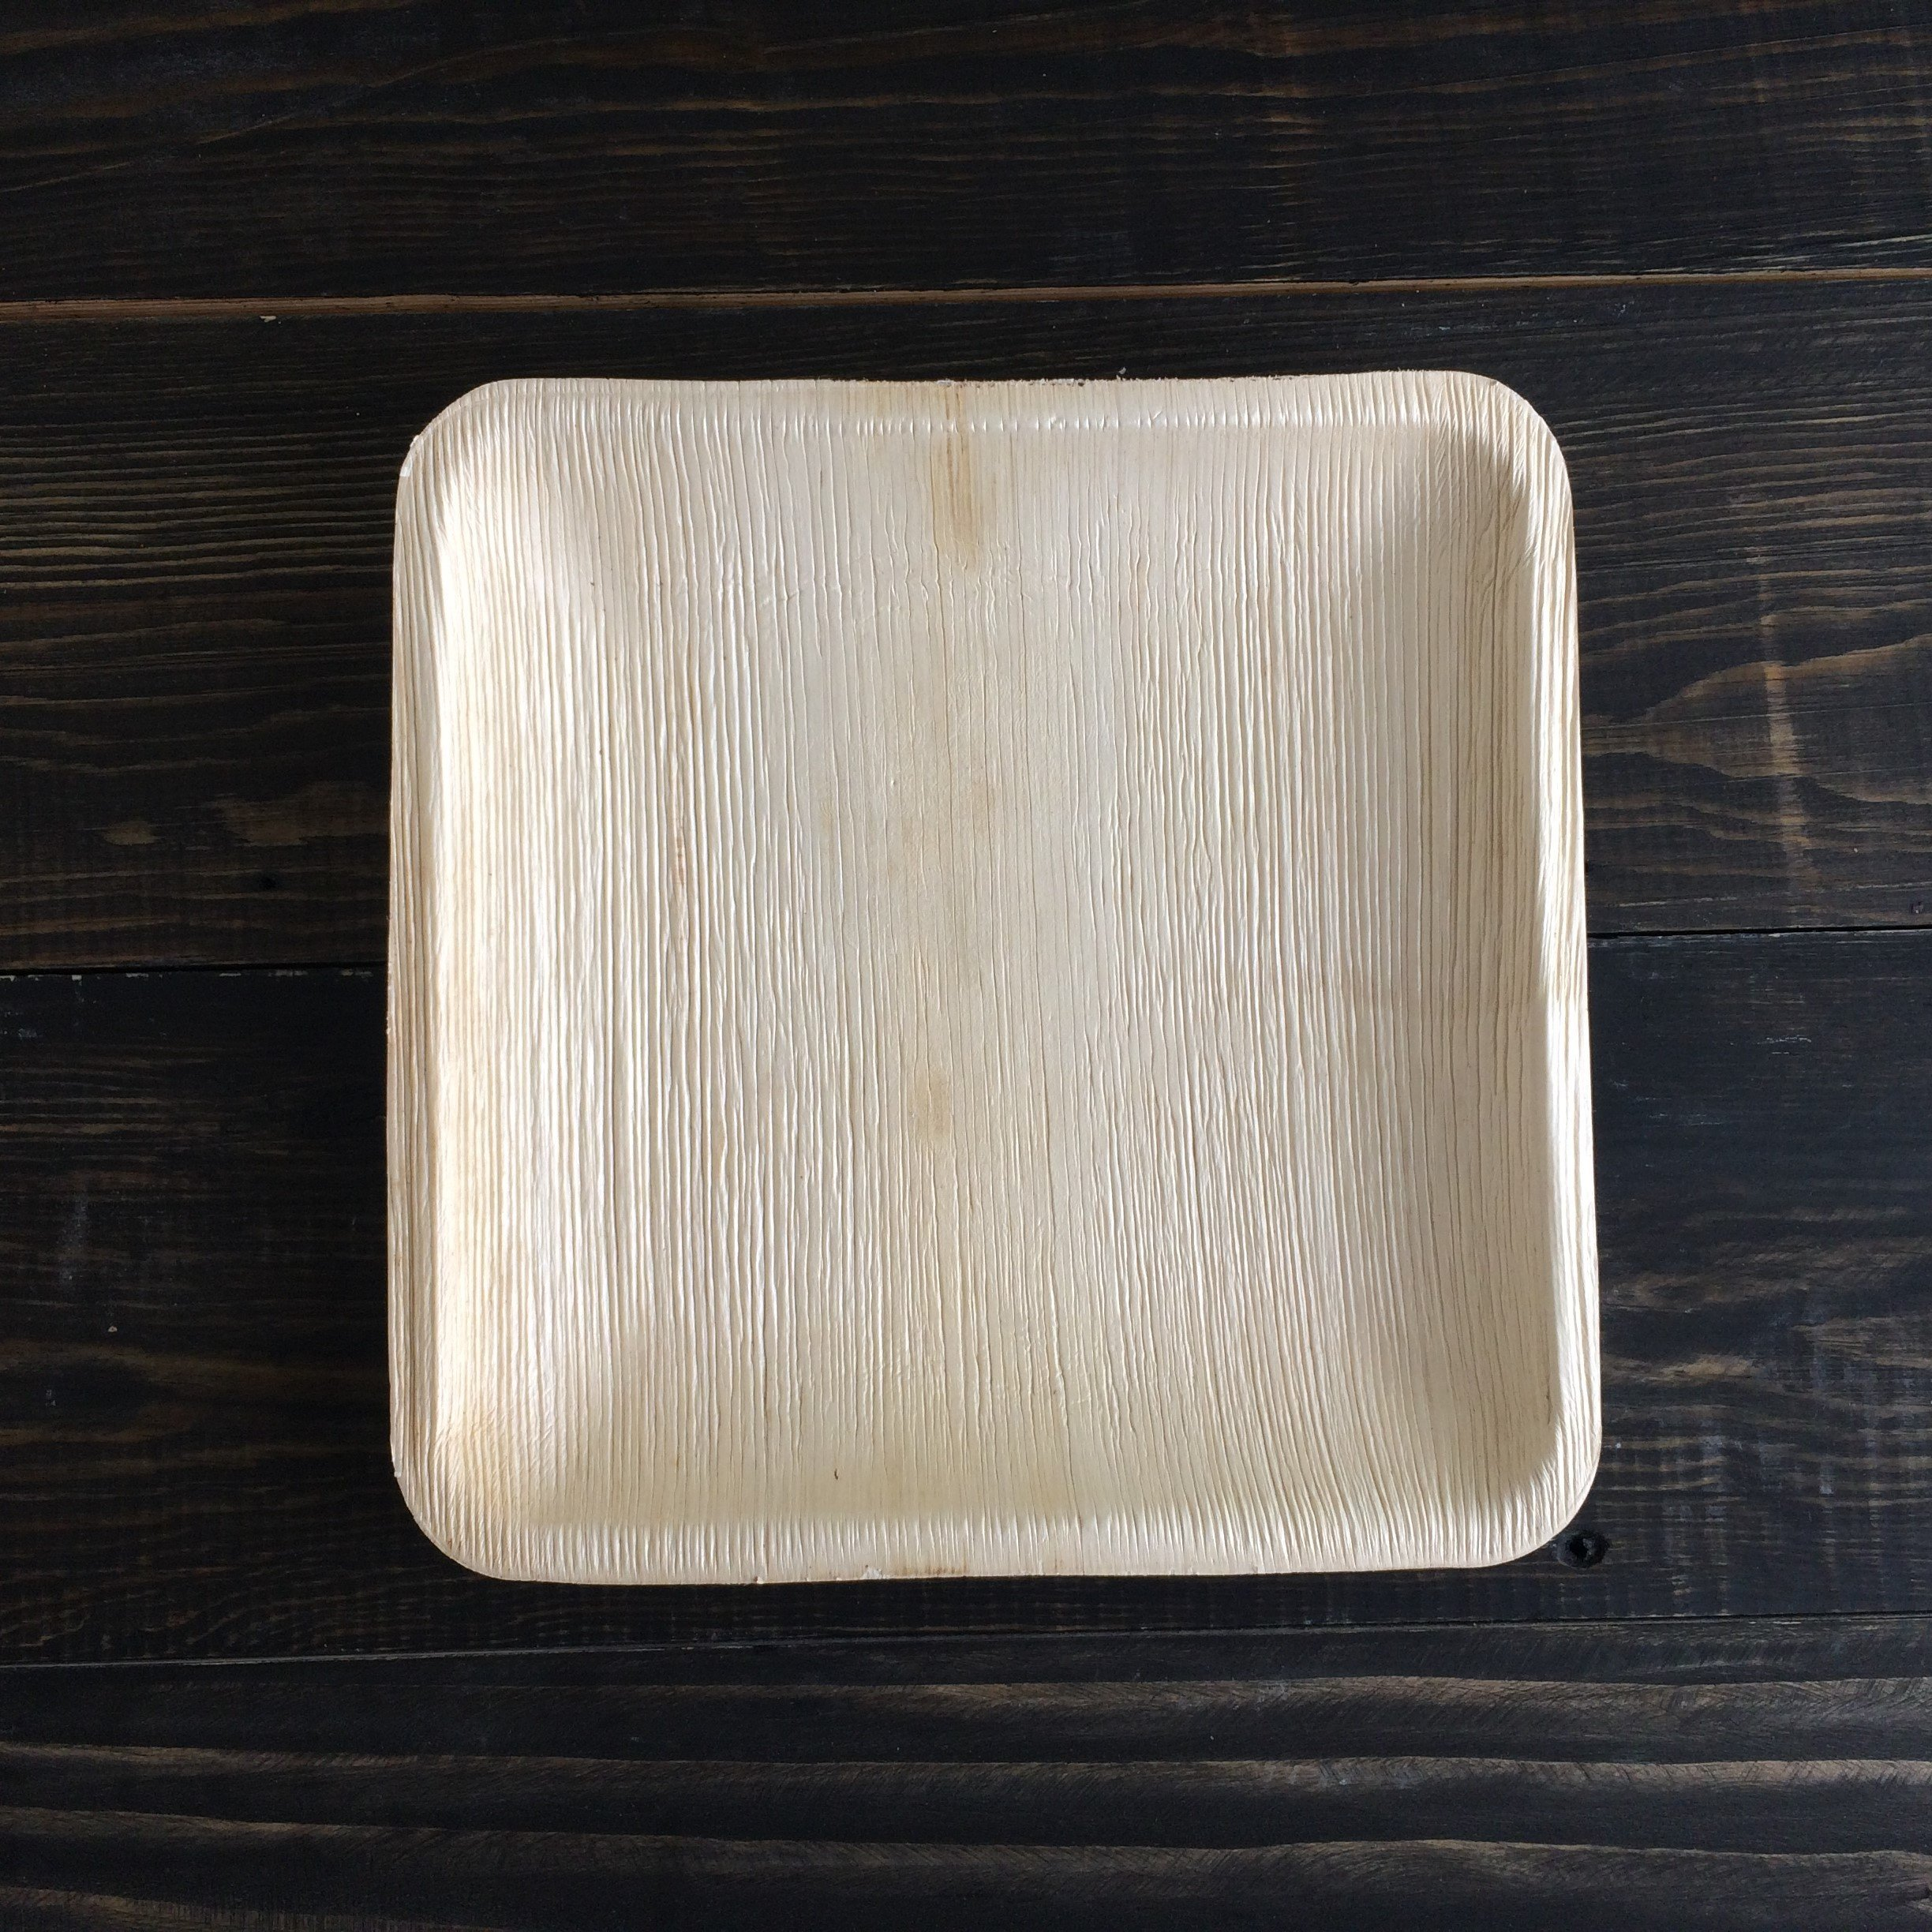 Disposable Plates Made of Palm Leaf: Heavy Duty & Eco - Better Than Wood & Bamboo- Square Shape (6'' Square Plate - 25 Pcs, Peach to tan) by Adaaya (Image #4)